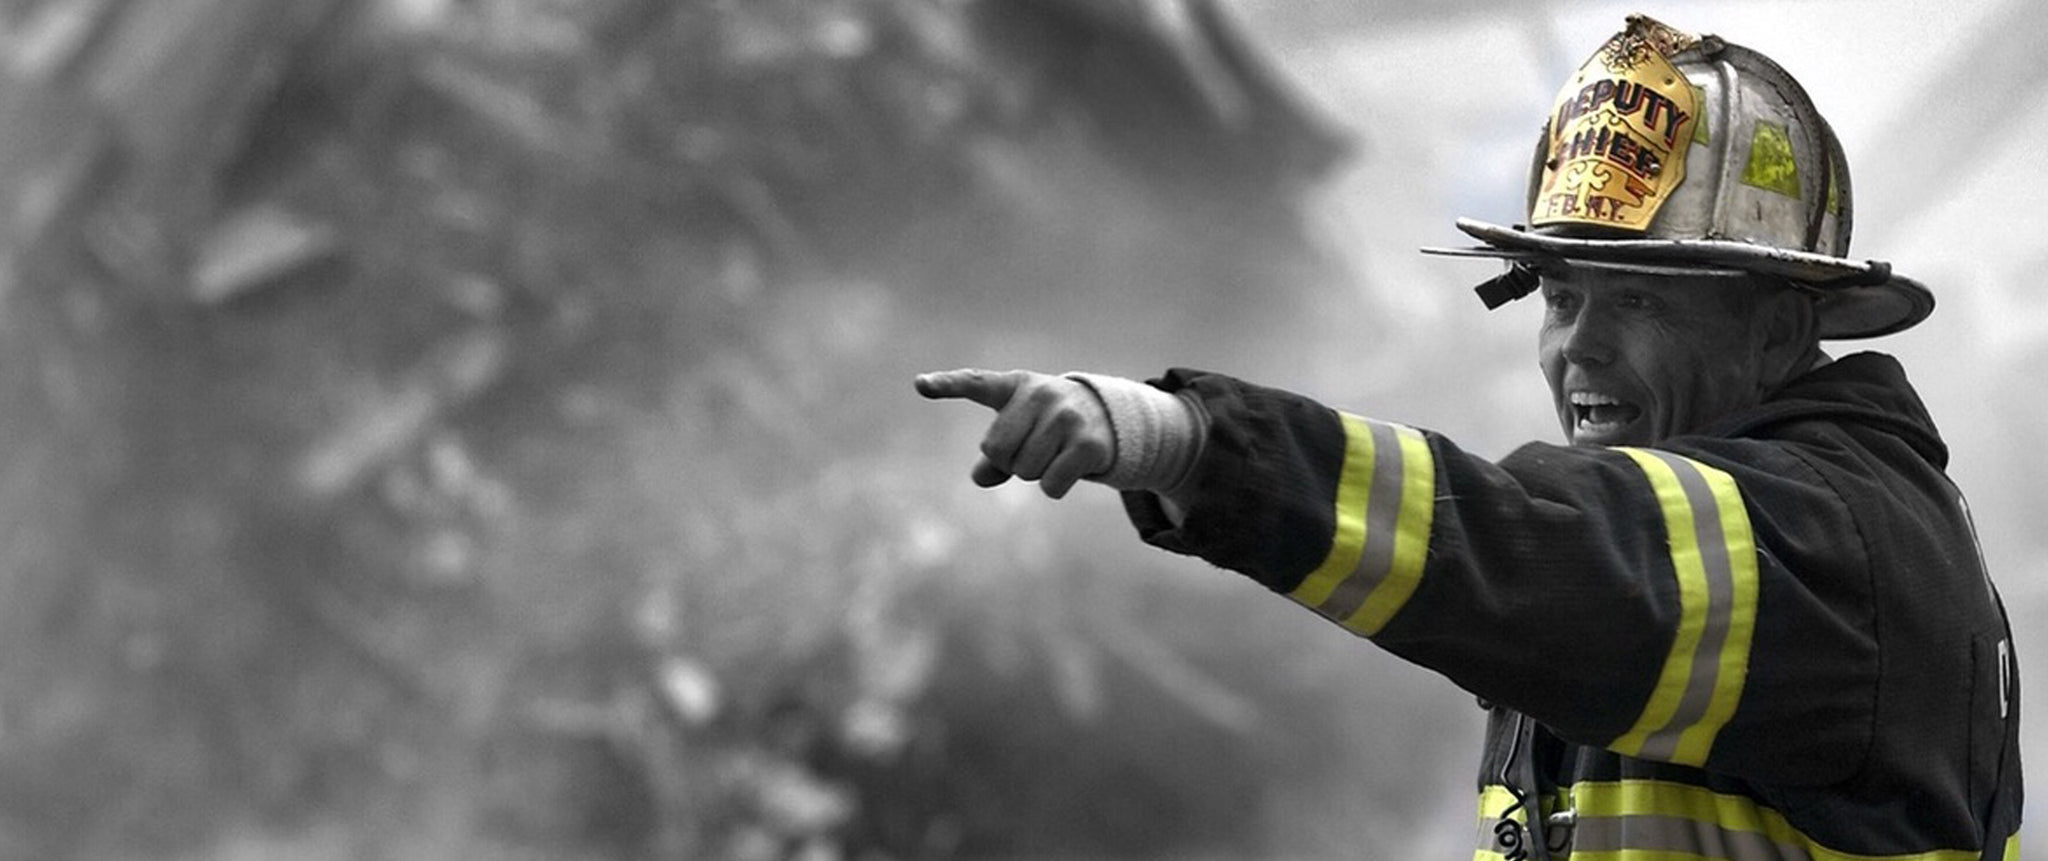 Firefighter pointing to the left in a smoky environment